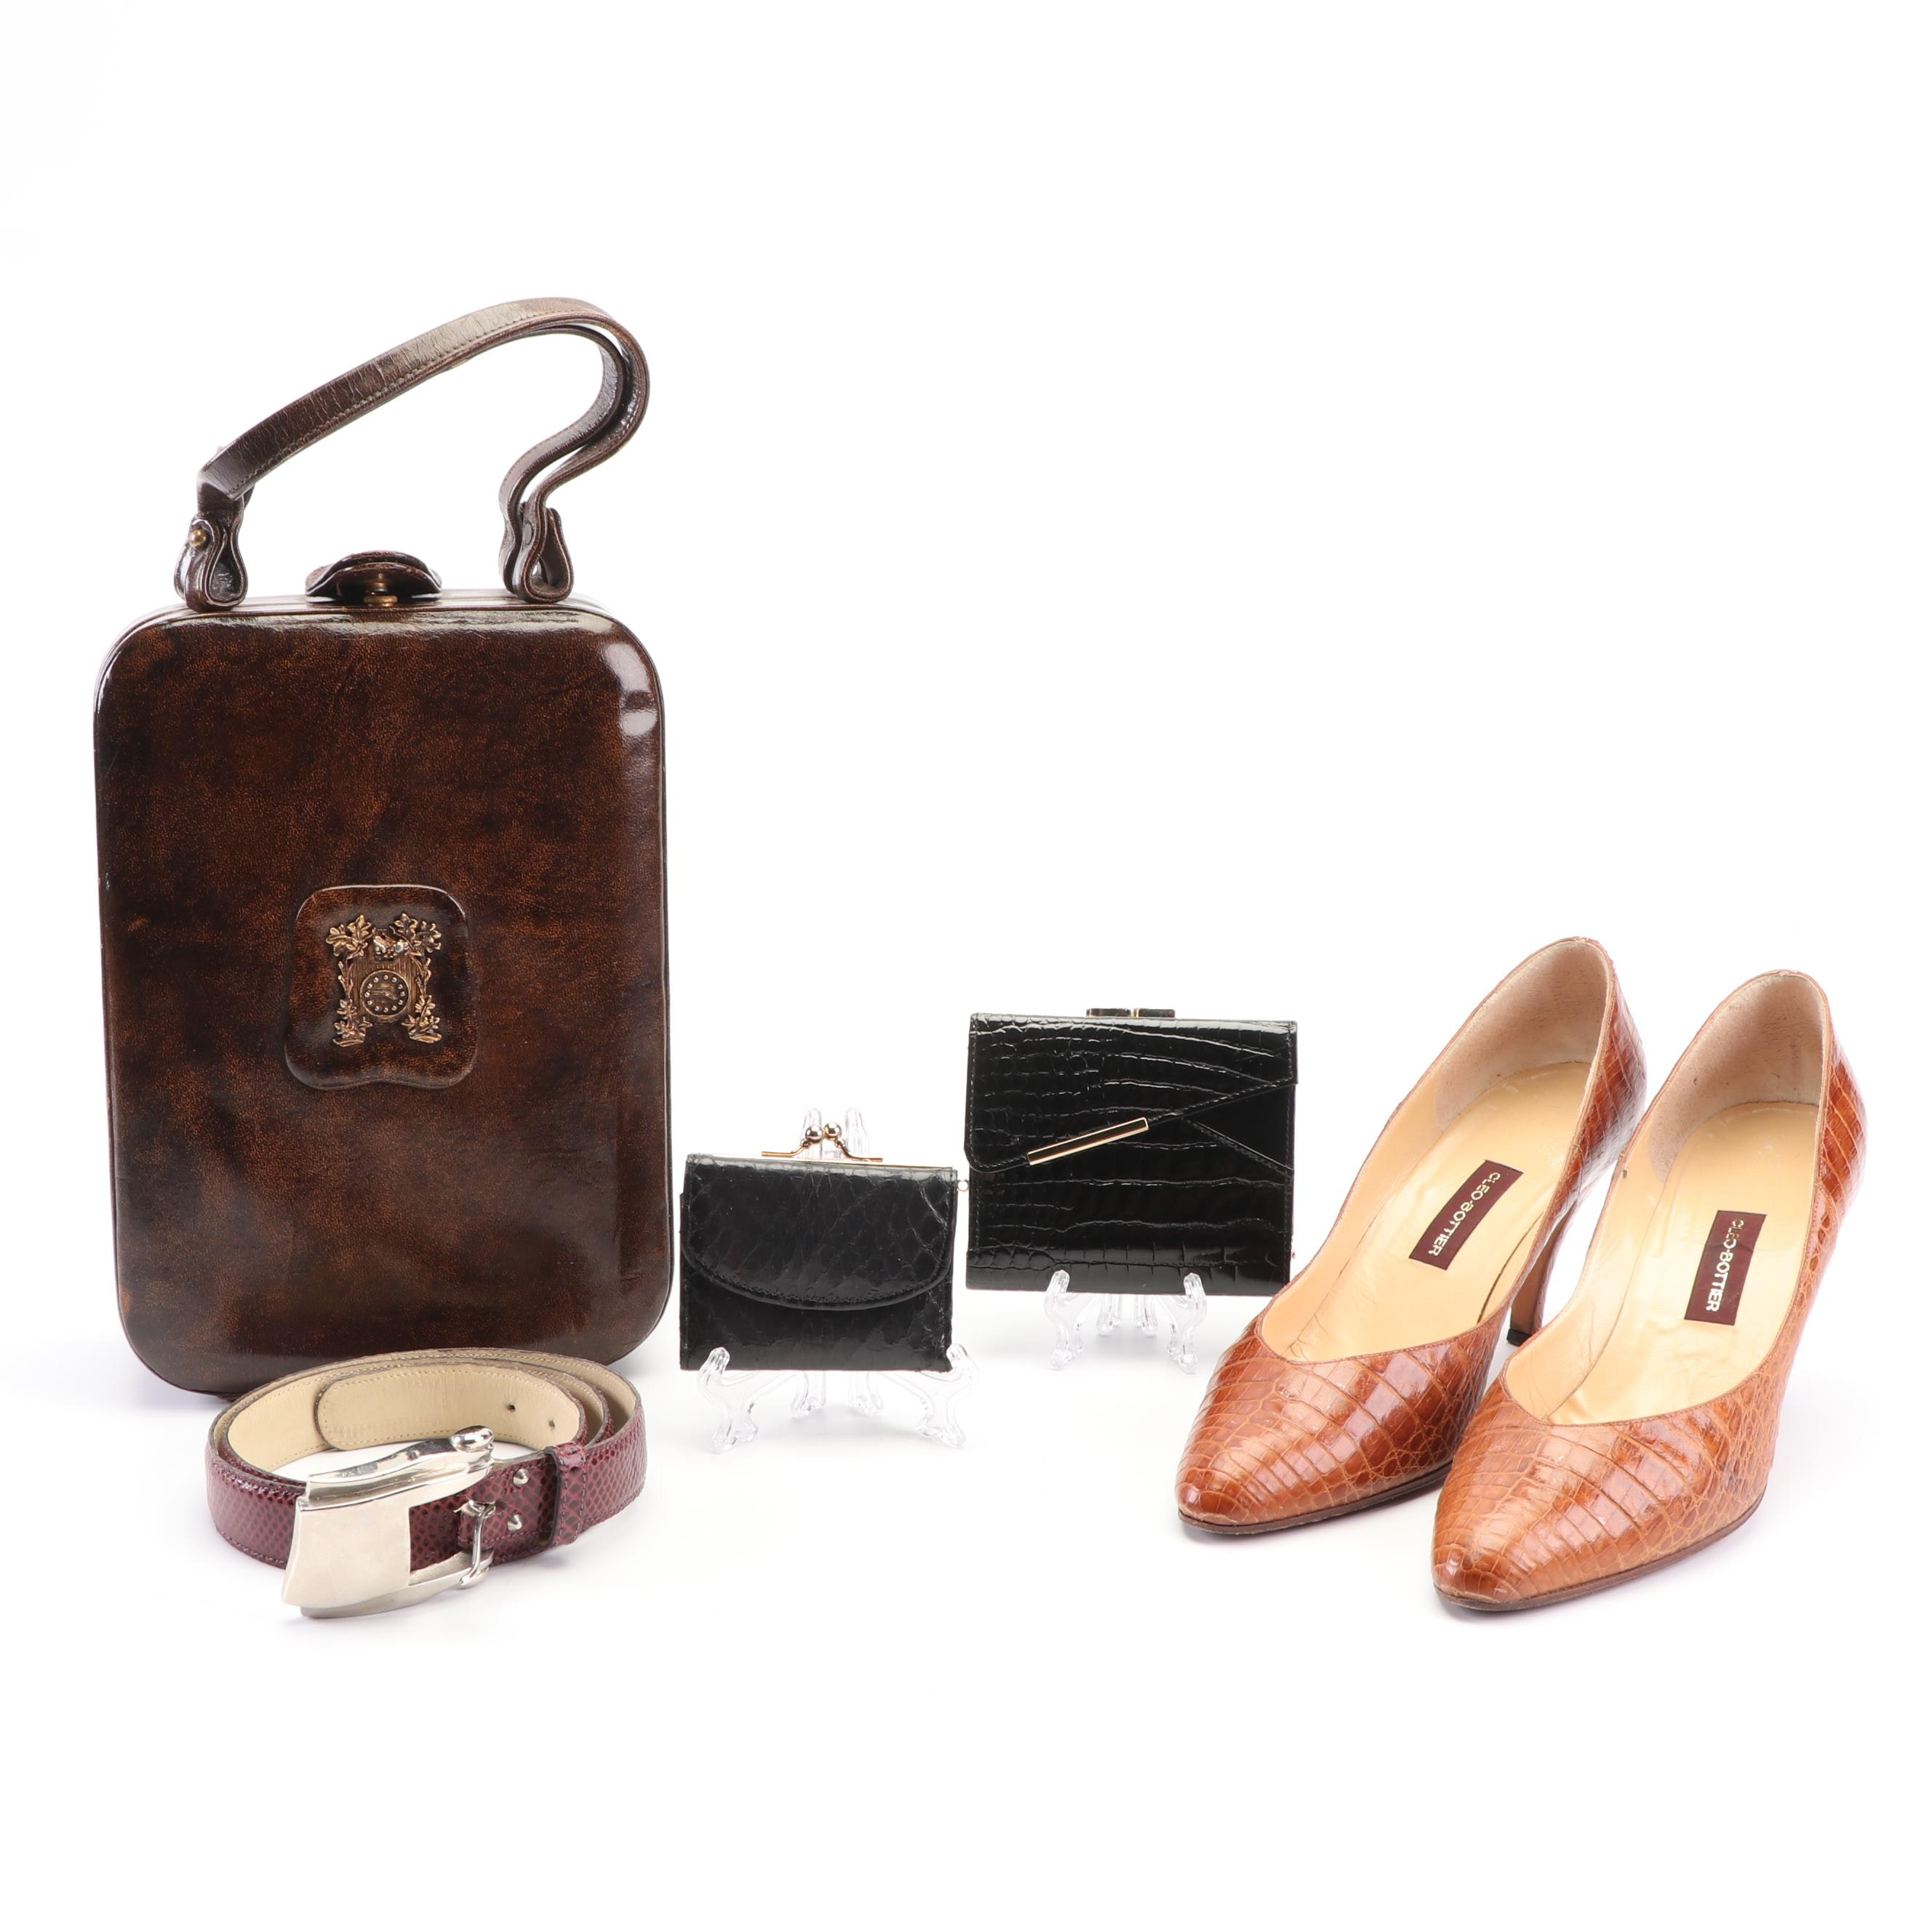 Cece Kieselstein Cord Belt, Alligator Pumps, Snakeskin Coin Purse and more